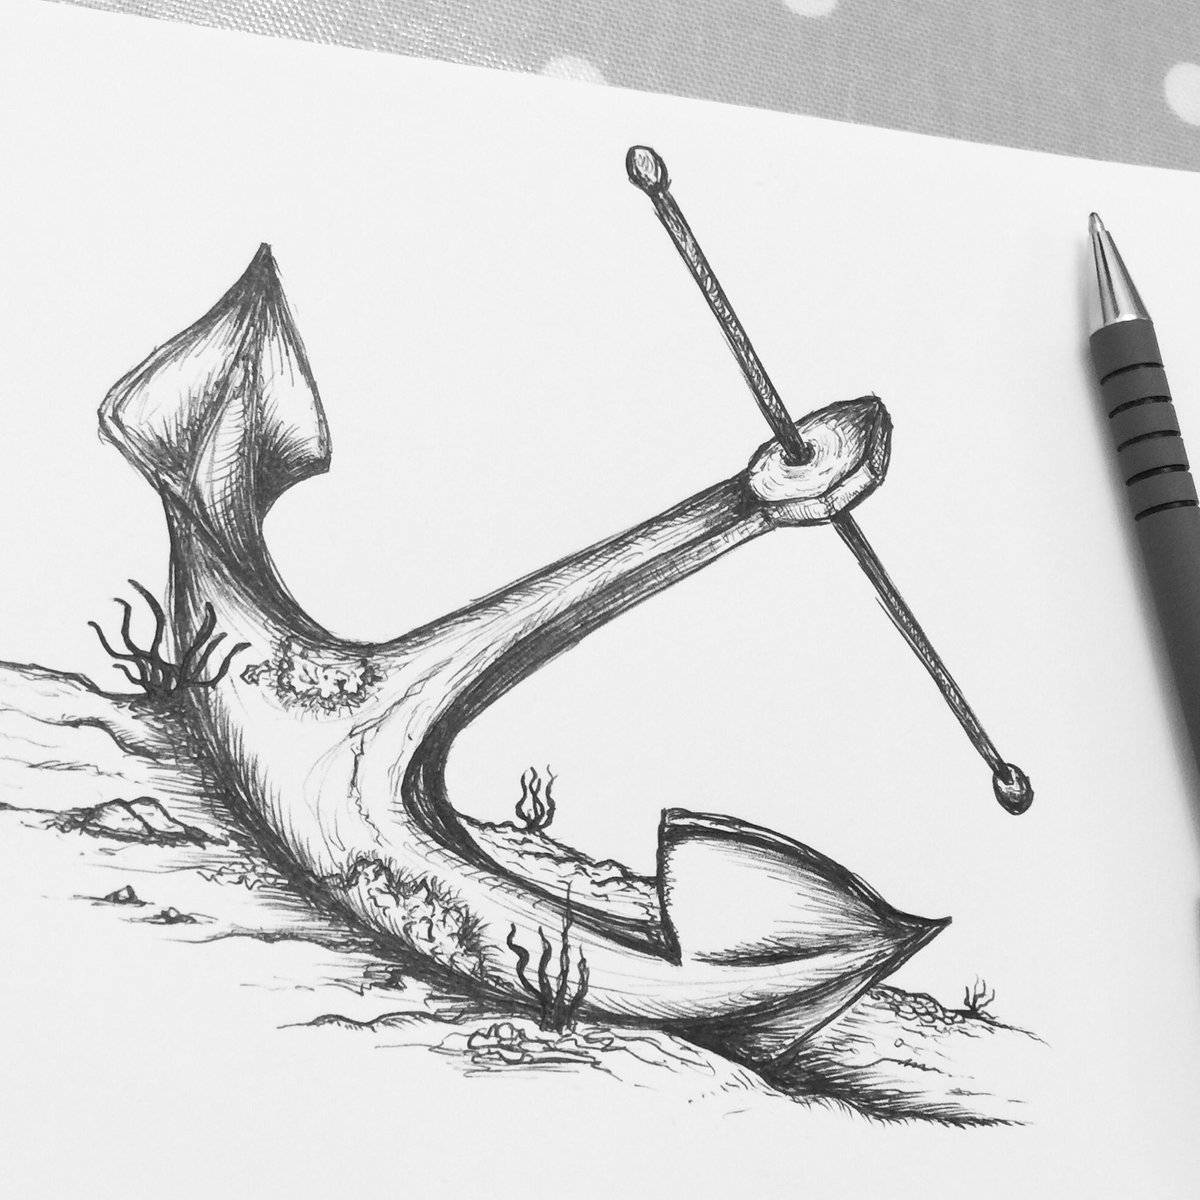 Quick anchor sketch; what else do you find on the seabed / ocean floor?  #illustration #illustrator #art #sketch #sketching #drawing #draw #artist #sketches #pensketch #pensketching #doodle #doodlesketch #doodles #graphicdesign #graphicdesigner #sketchbook